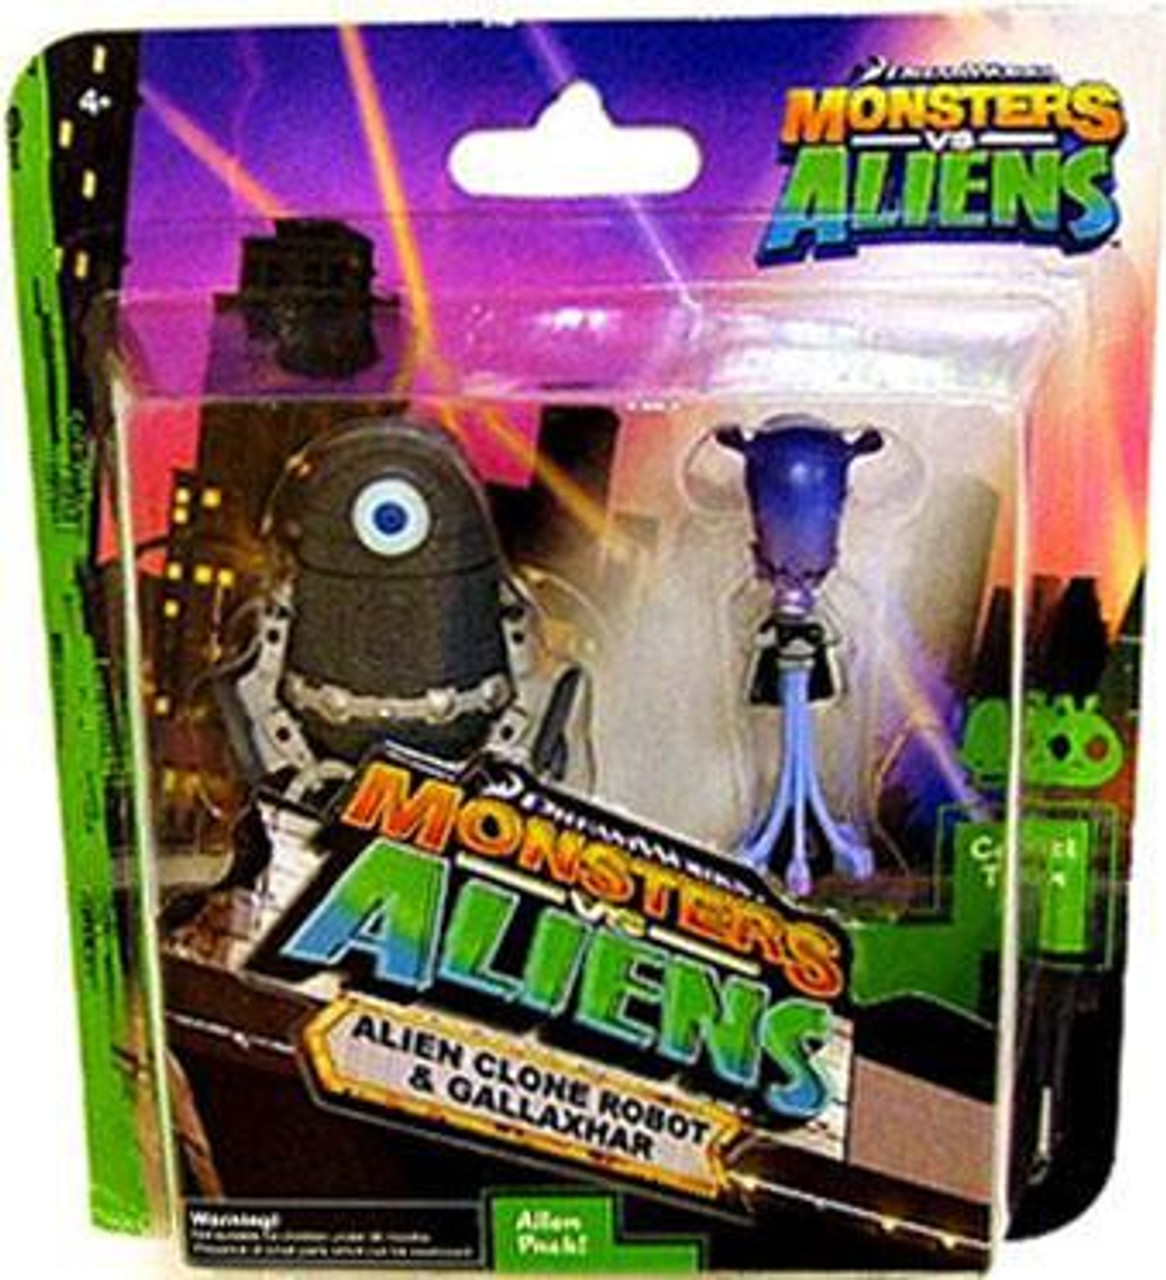 Monsters vs. Aliens Alien Clone Robot & Gallaxhar Mini Figure 2-Pack